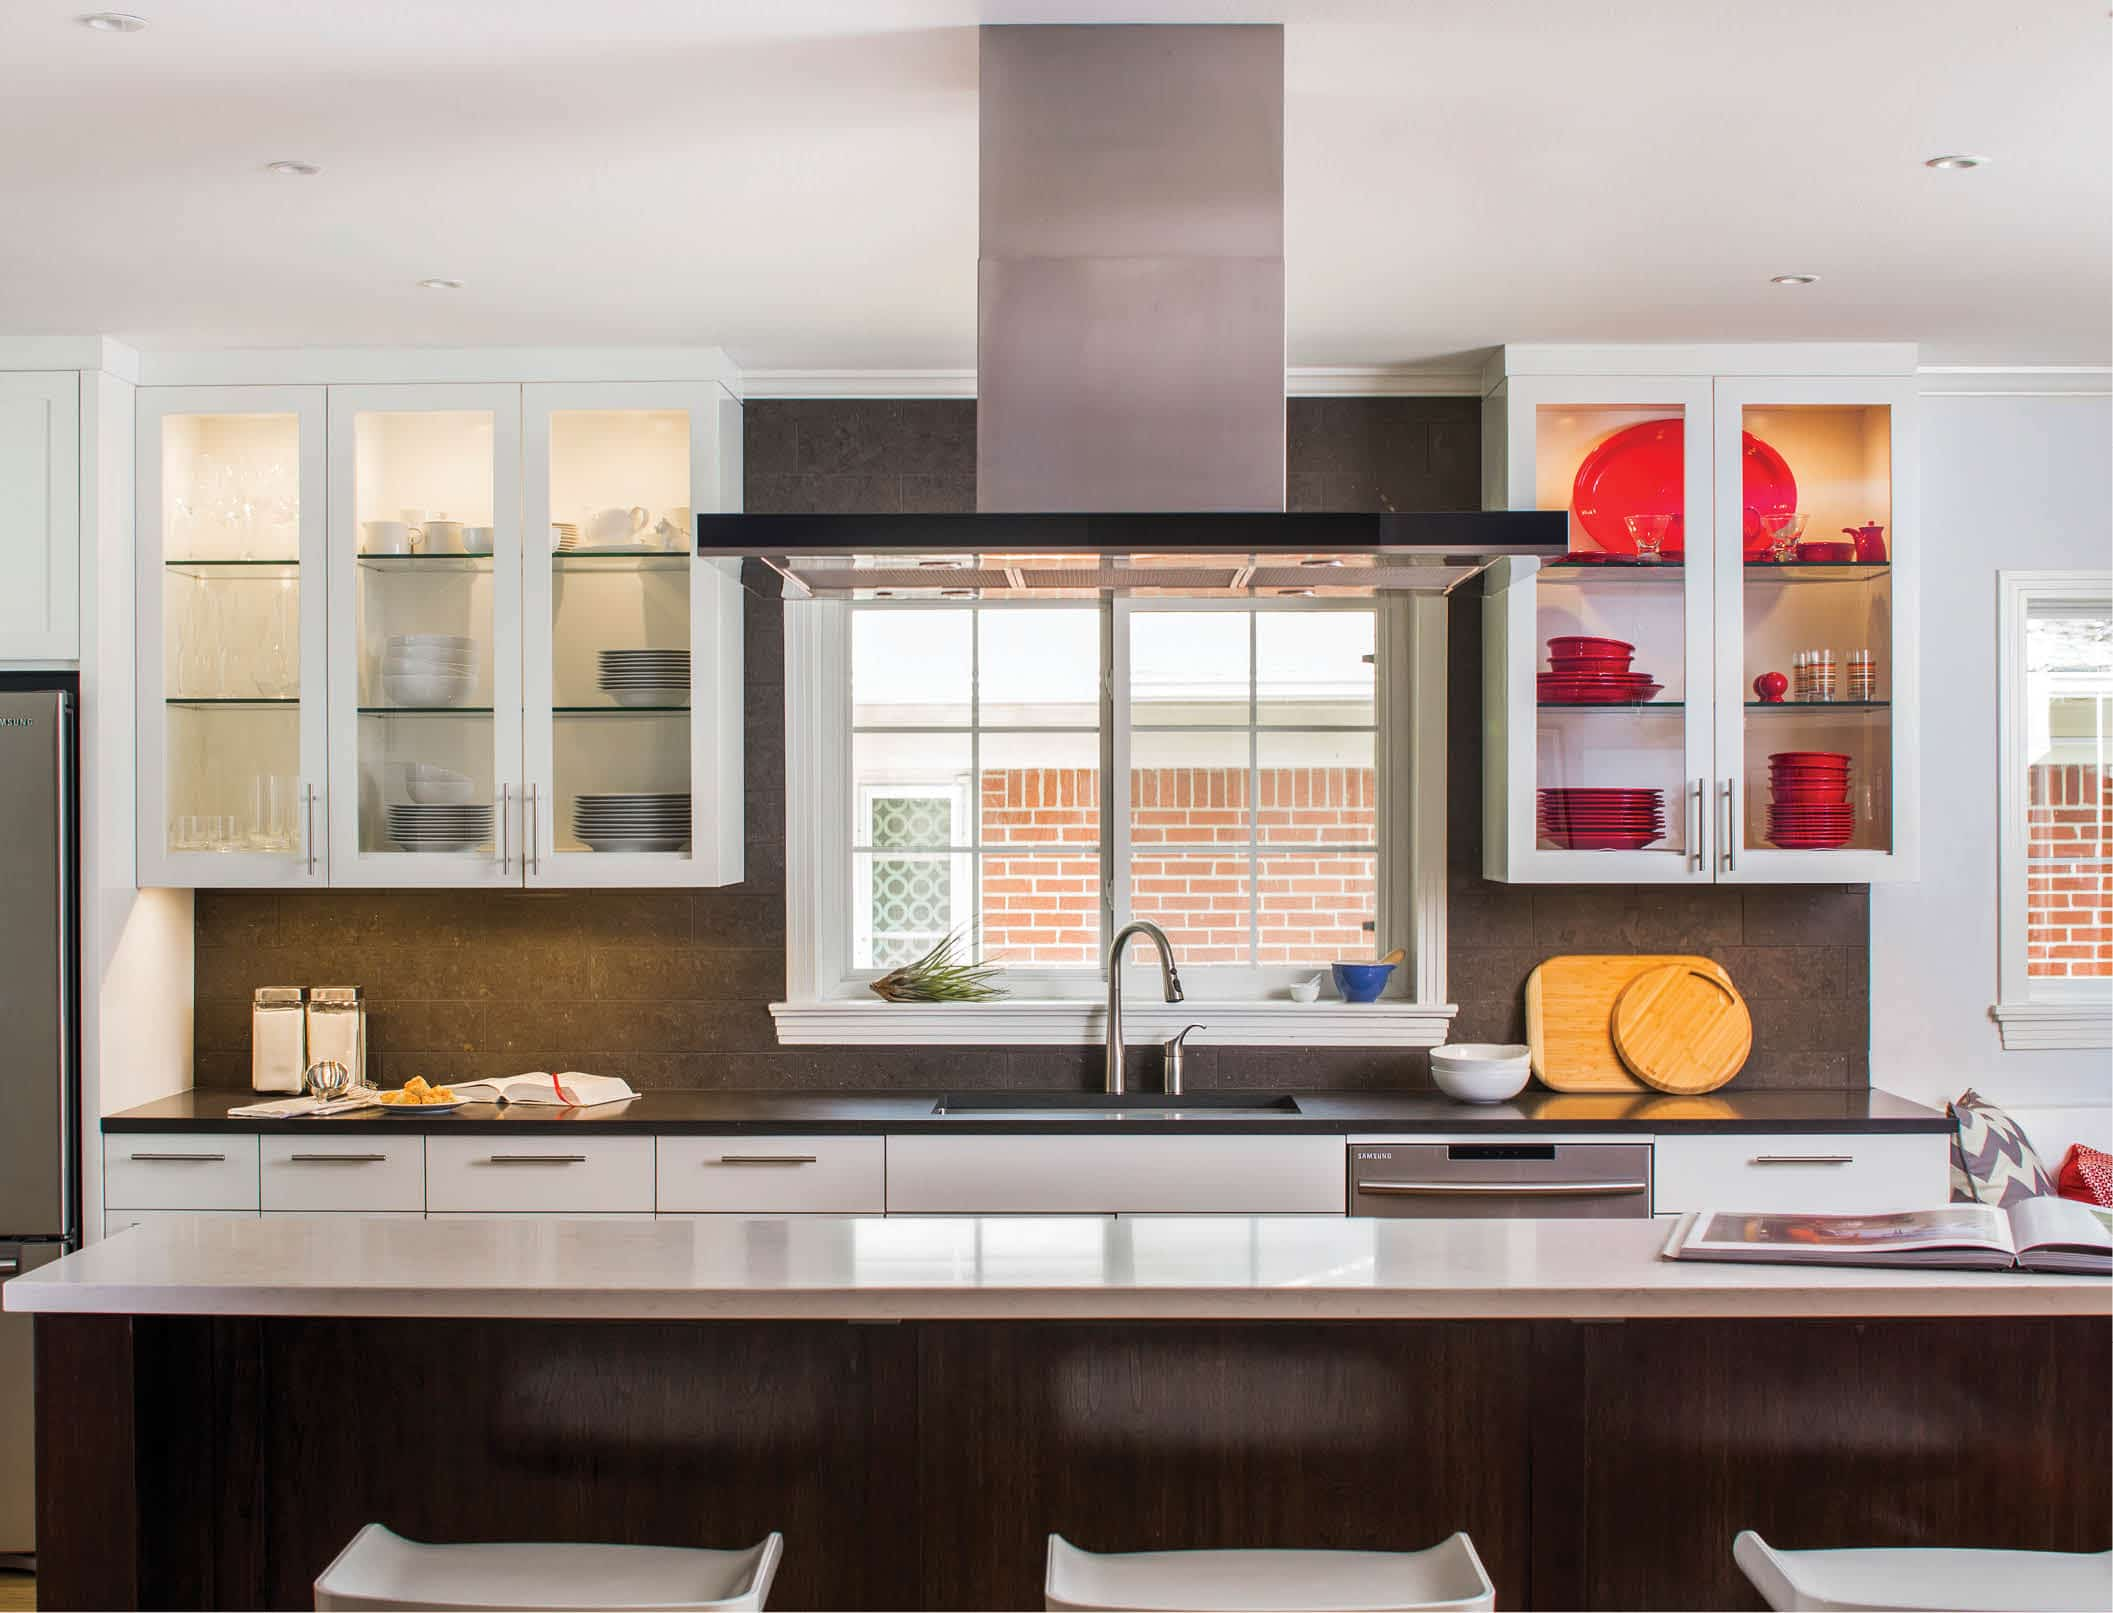 Dressed in walnut cabinetry with a light grey Caesarstone counter, the island provides a dramatic contrast to the white shaker style cabinetry and dark grey Caesarstone counters wrapping the perimeter of this new kitchen. Work by CG&S Design-Build. Photo: Tre Dunham